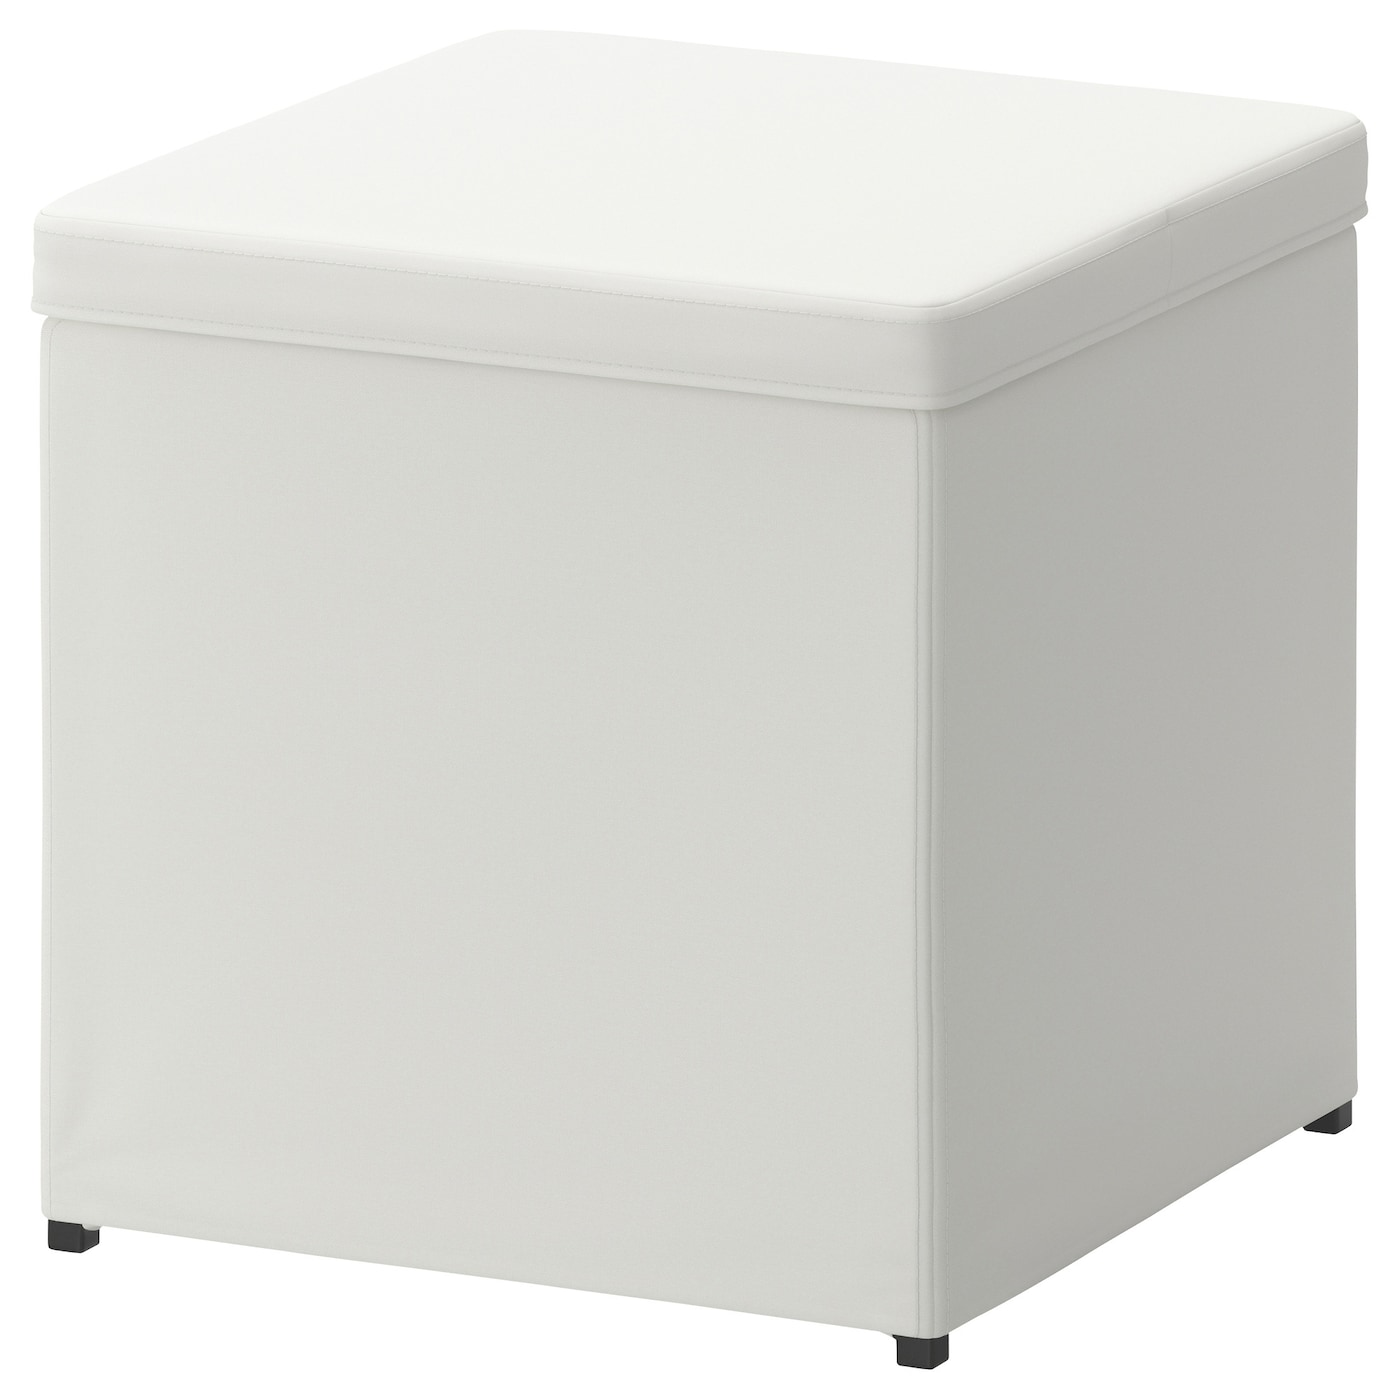 Bosn 196 S Footstool With Storage Ransta White Ikea